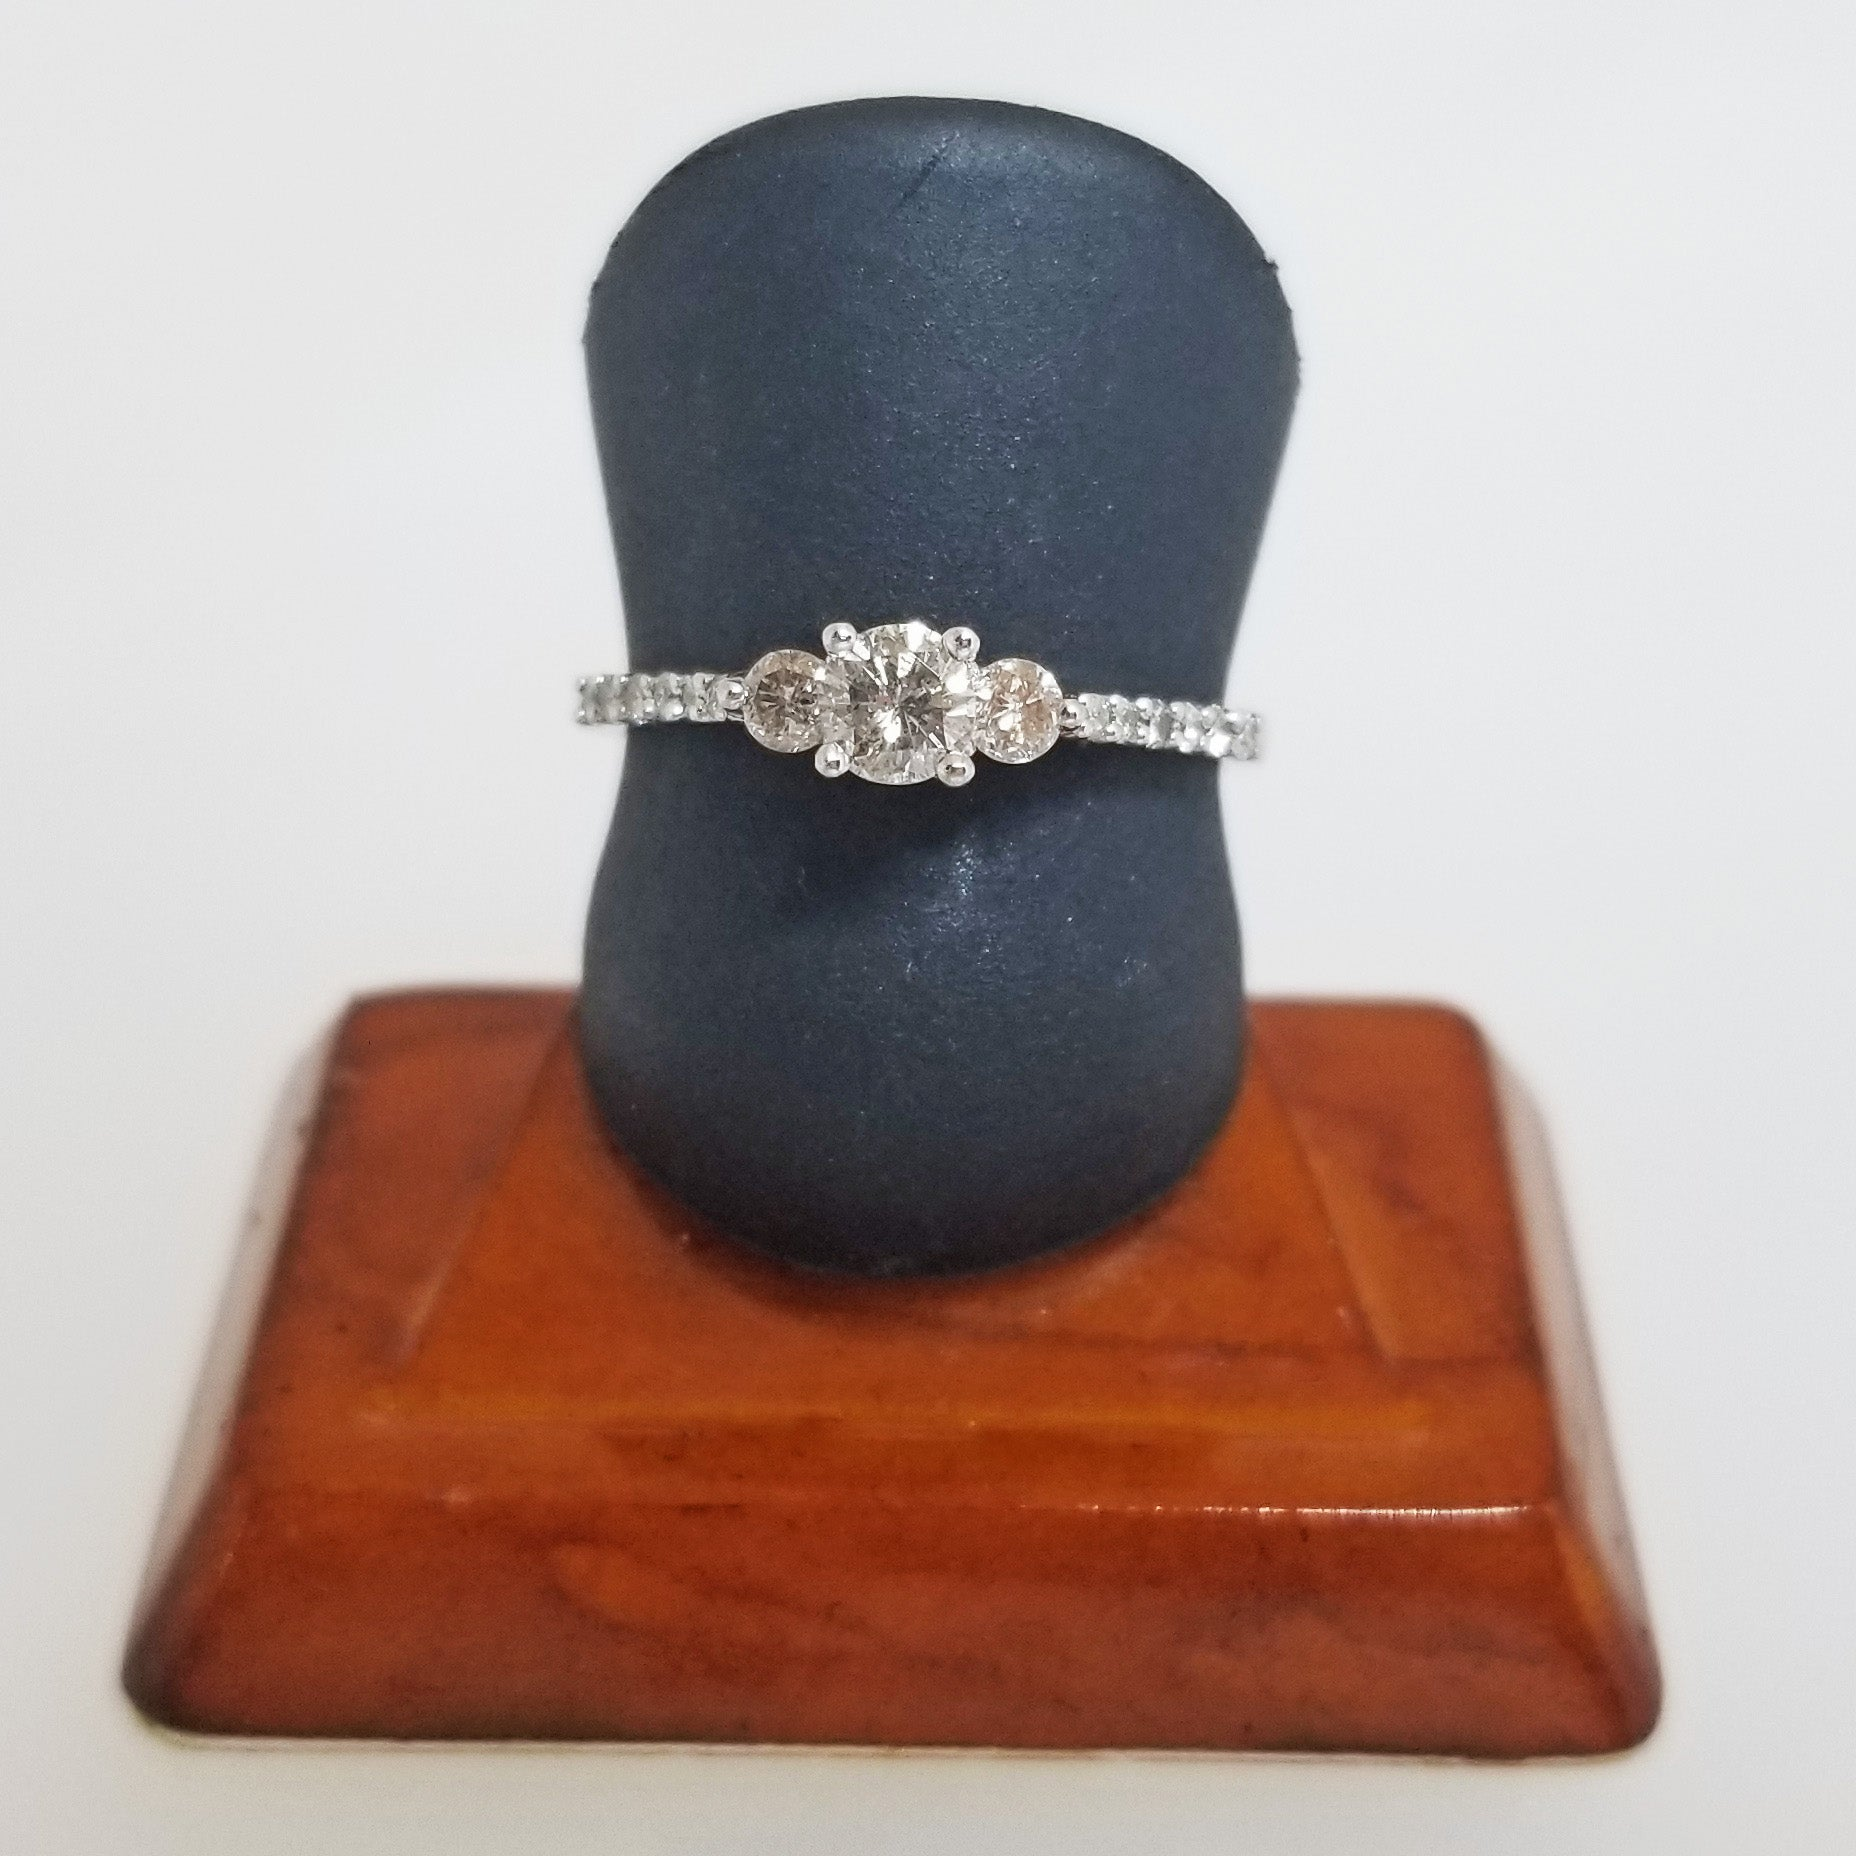 Ready to Ship petite diamond three stone engagement ring in 10k white gold